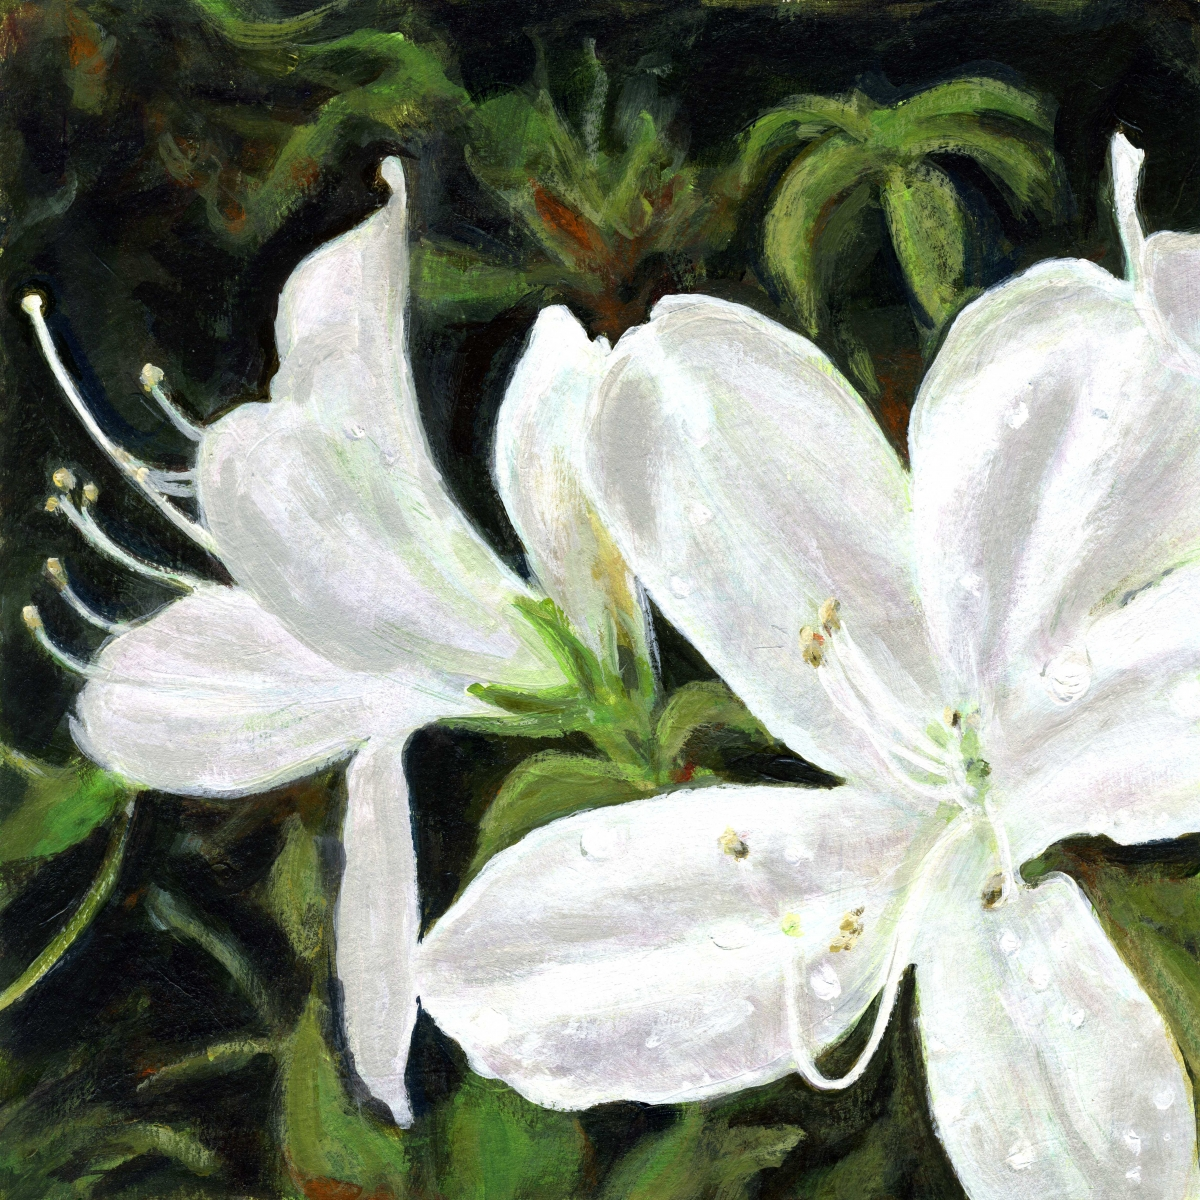 intimate view of white azalea blossoms with morning dew (large view)